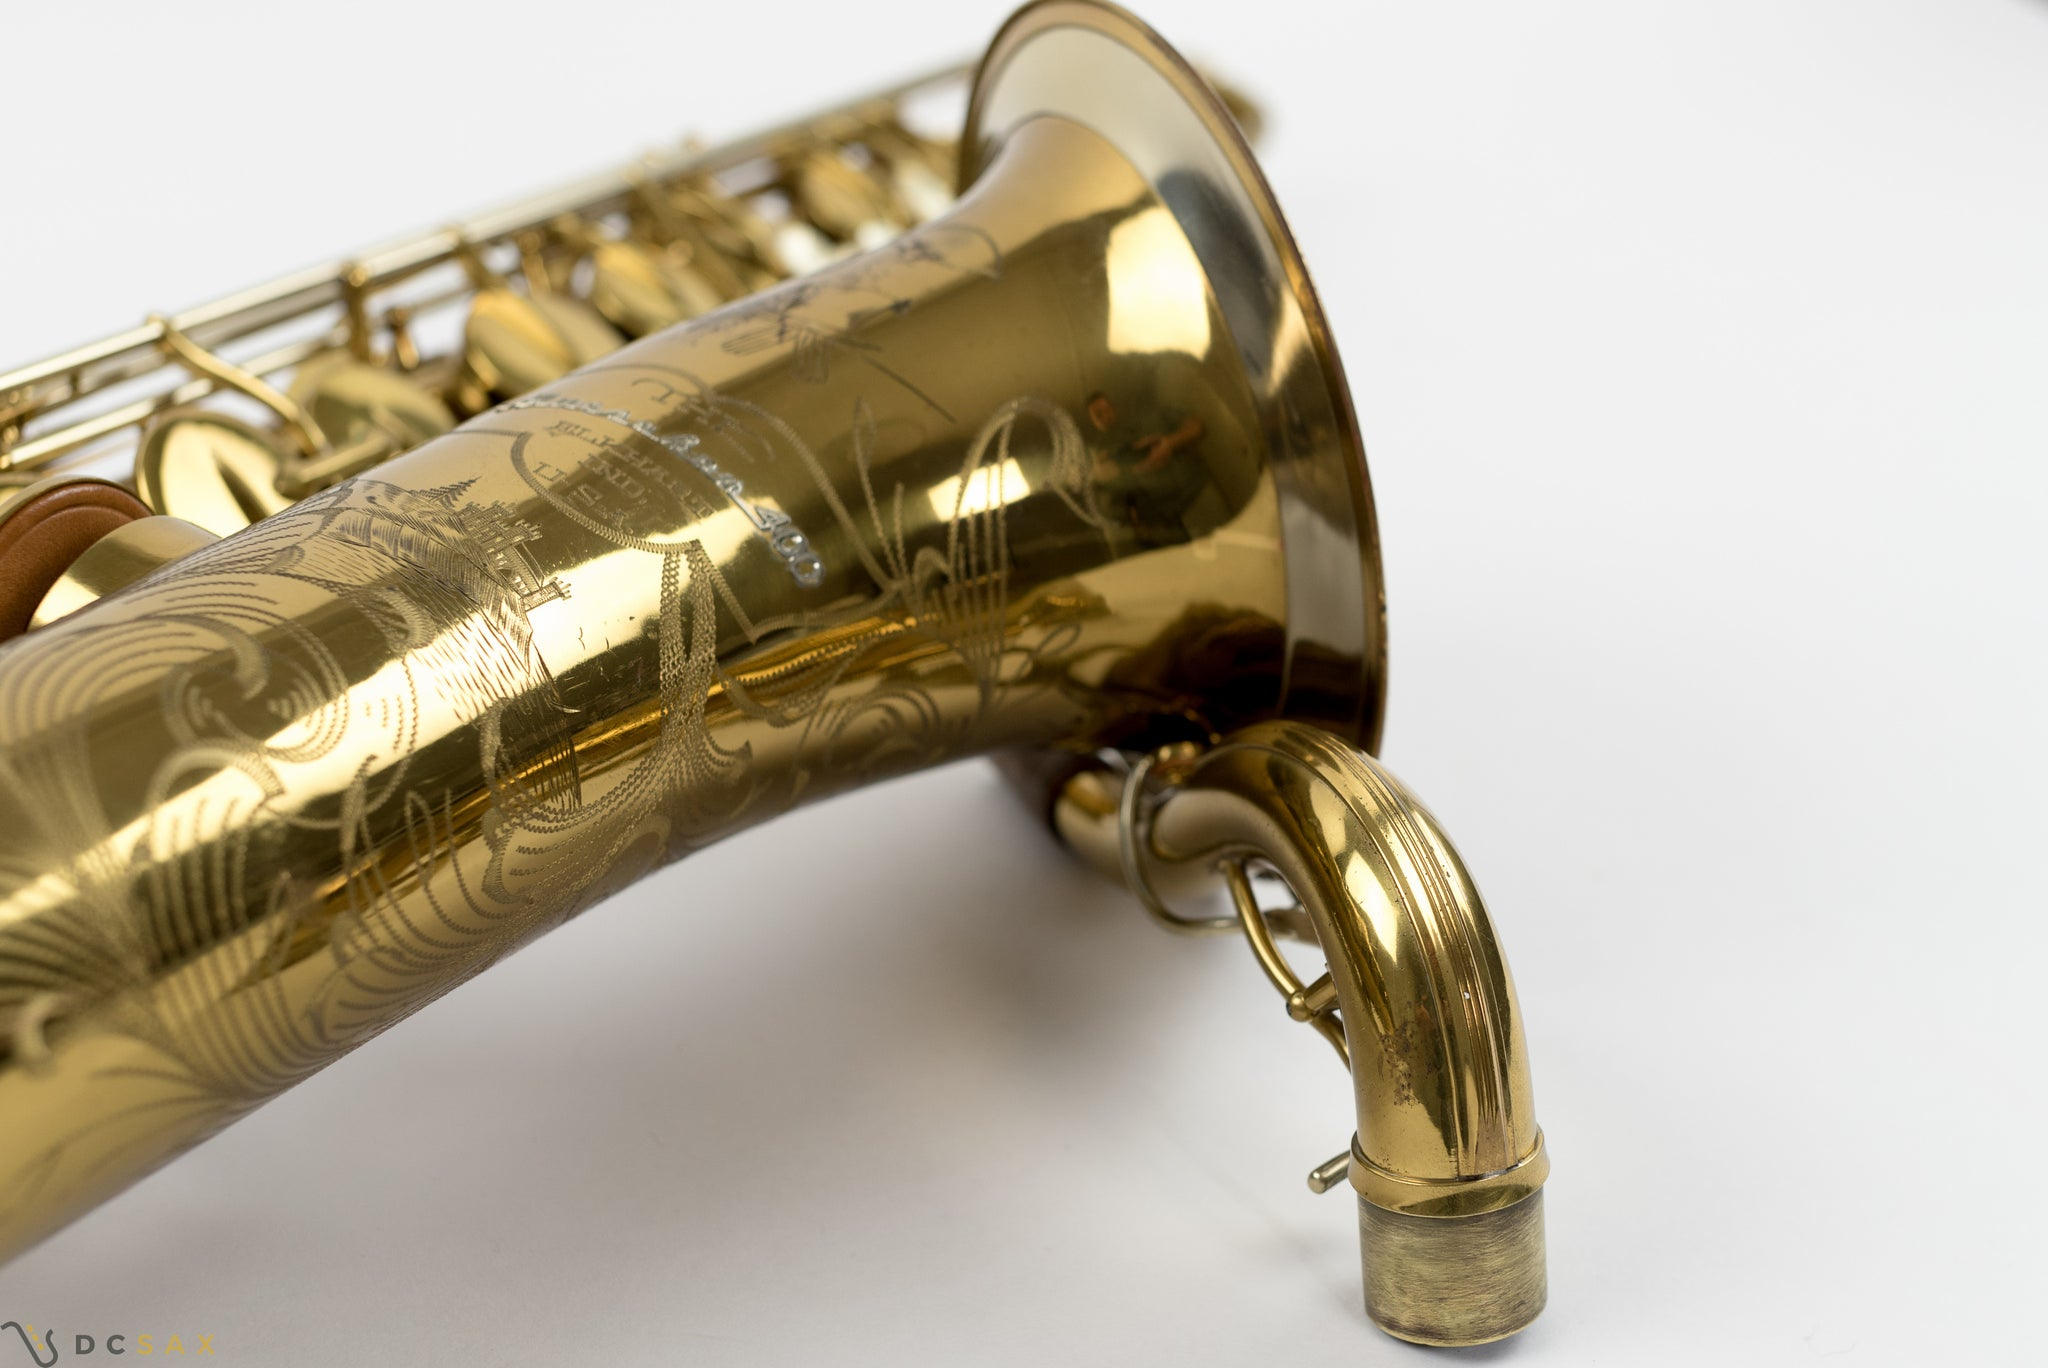 1945 Buescher 400 Top Hat and Cane Tenor Saxophone, Near Mint, Original Lacquer